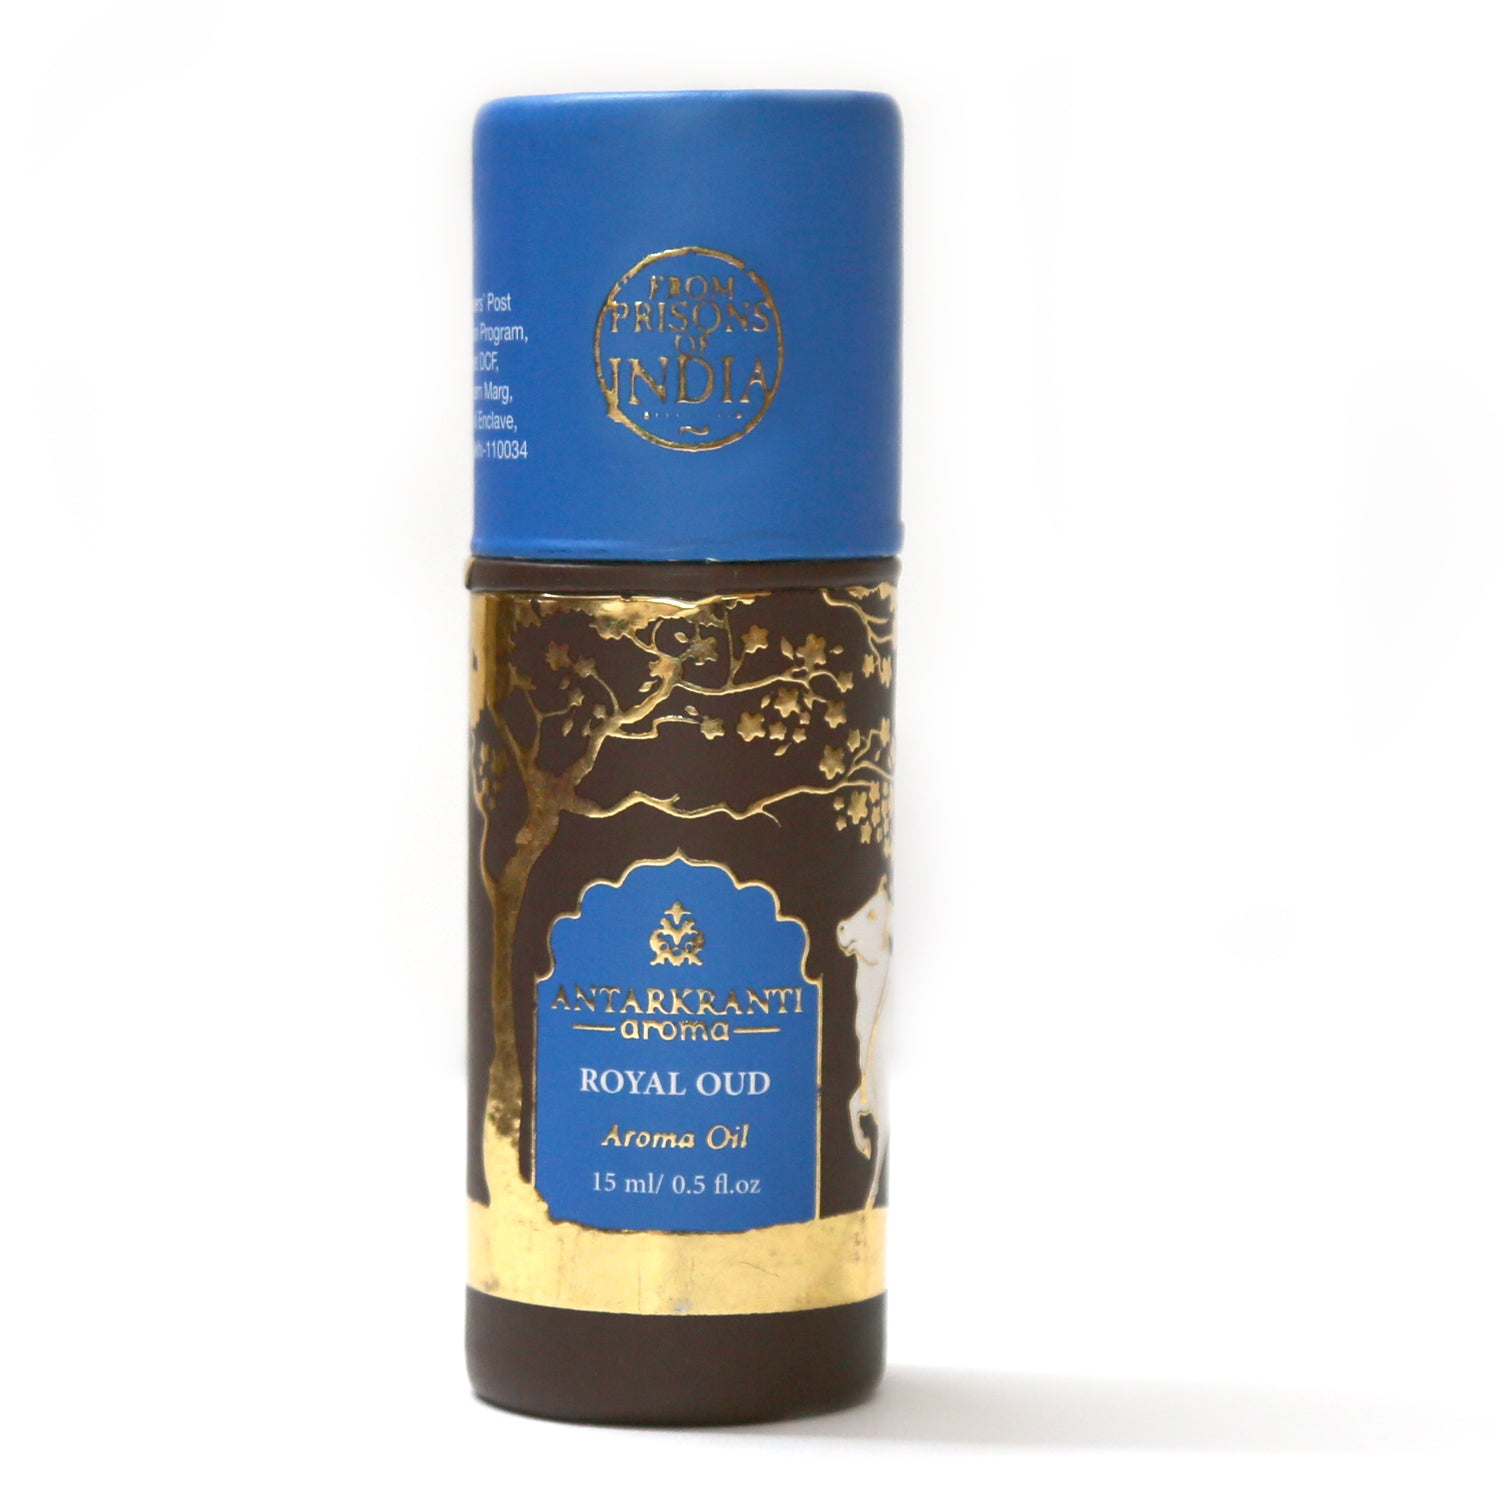 Royal Oud Essential Oil